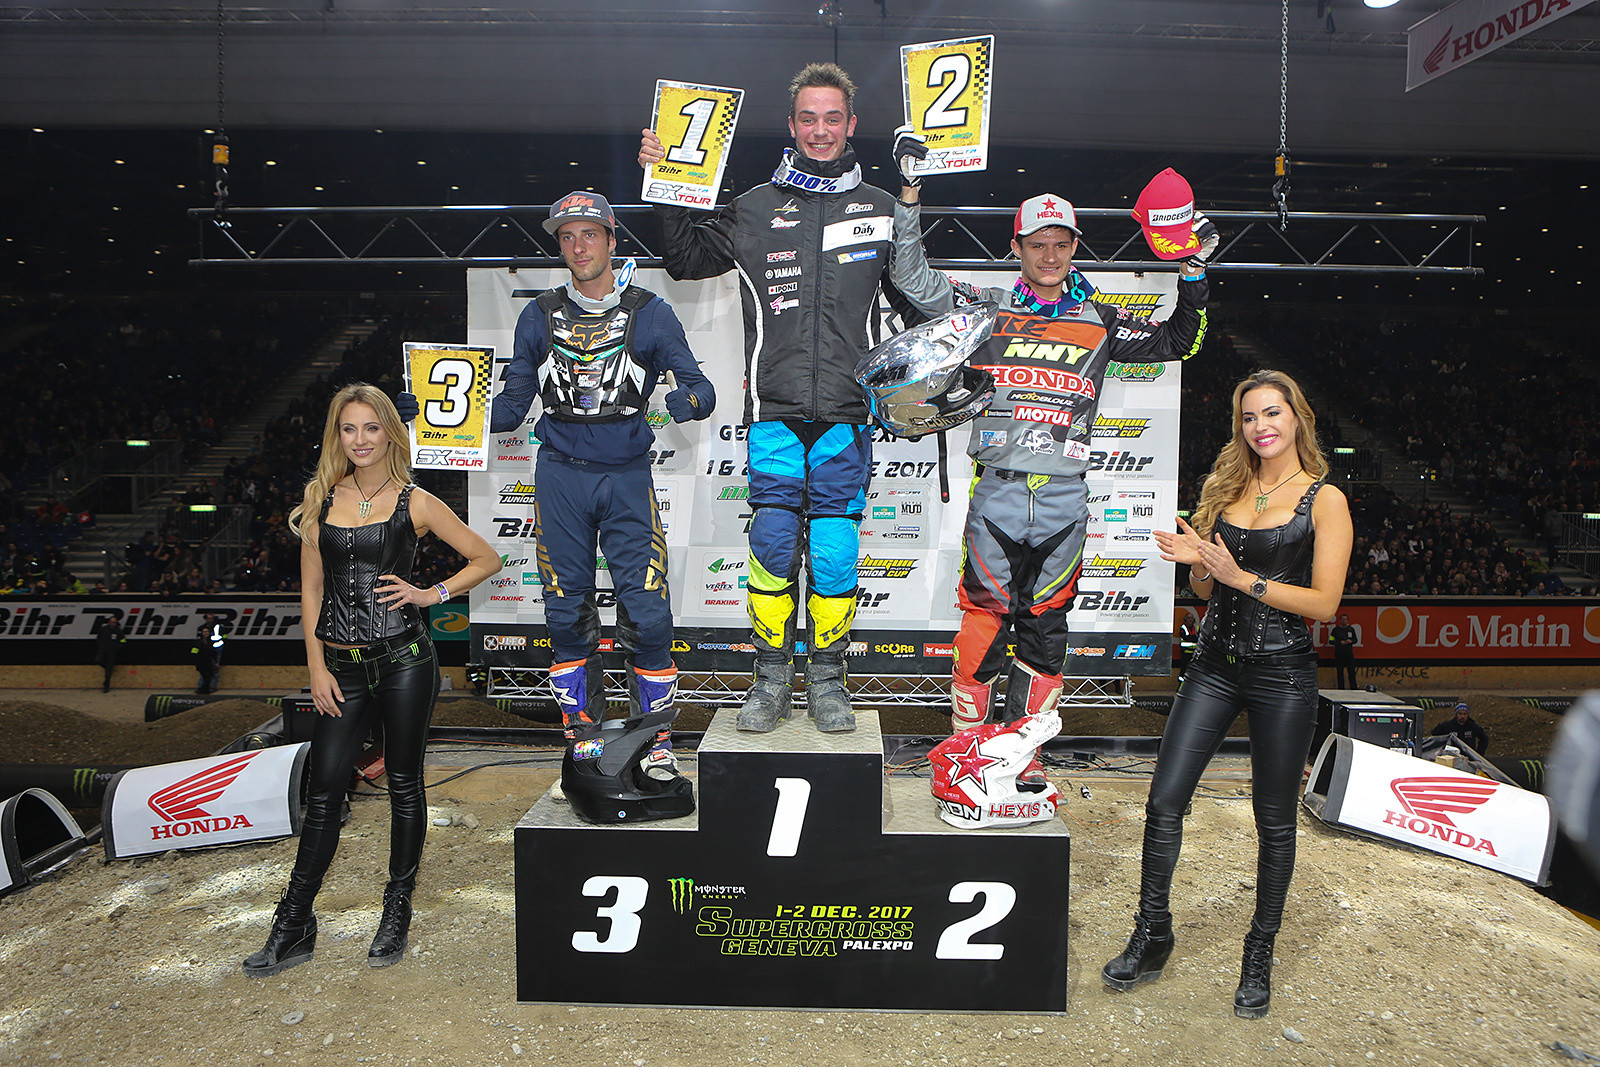 Here's your 250 podium, with Dercourt, Do, and Auberson.